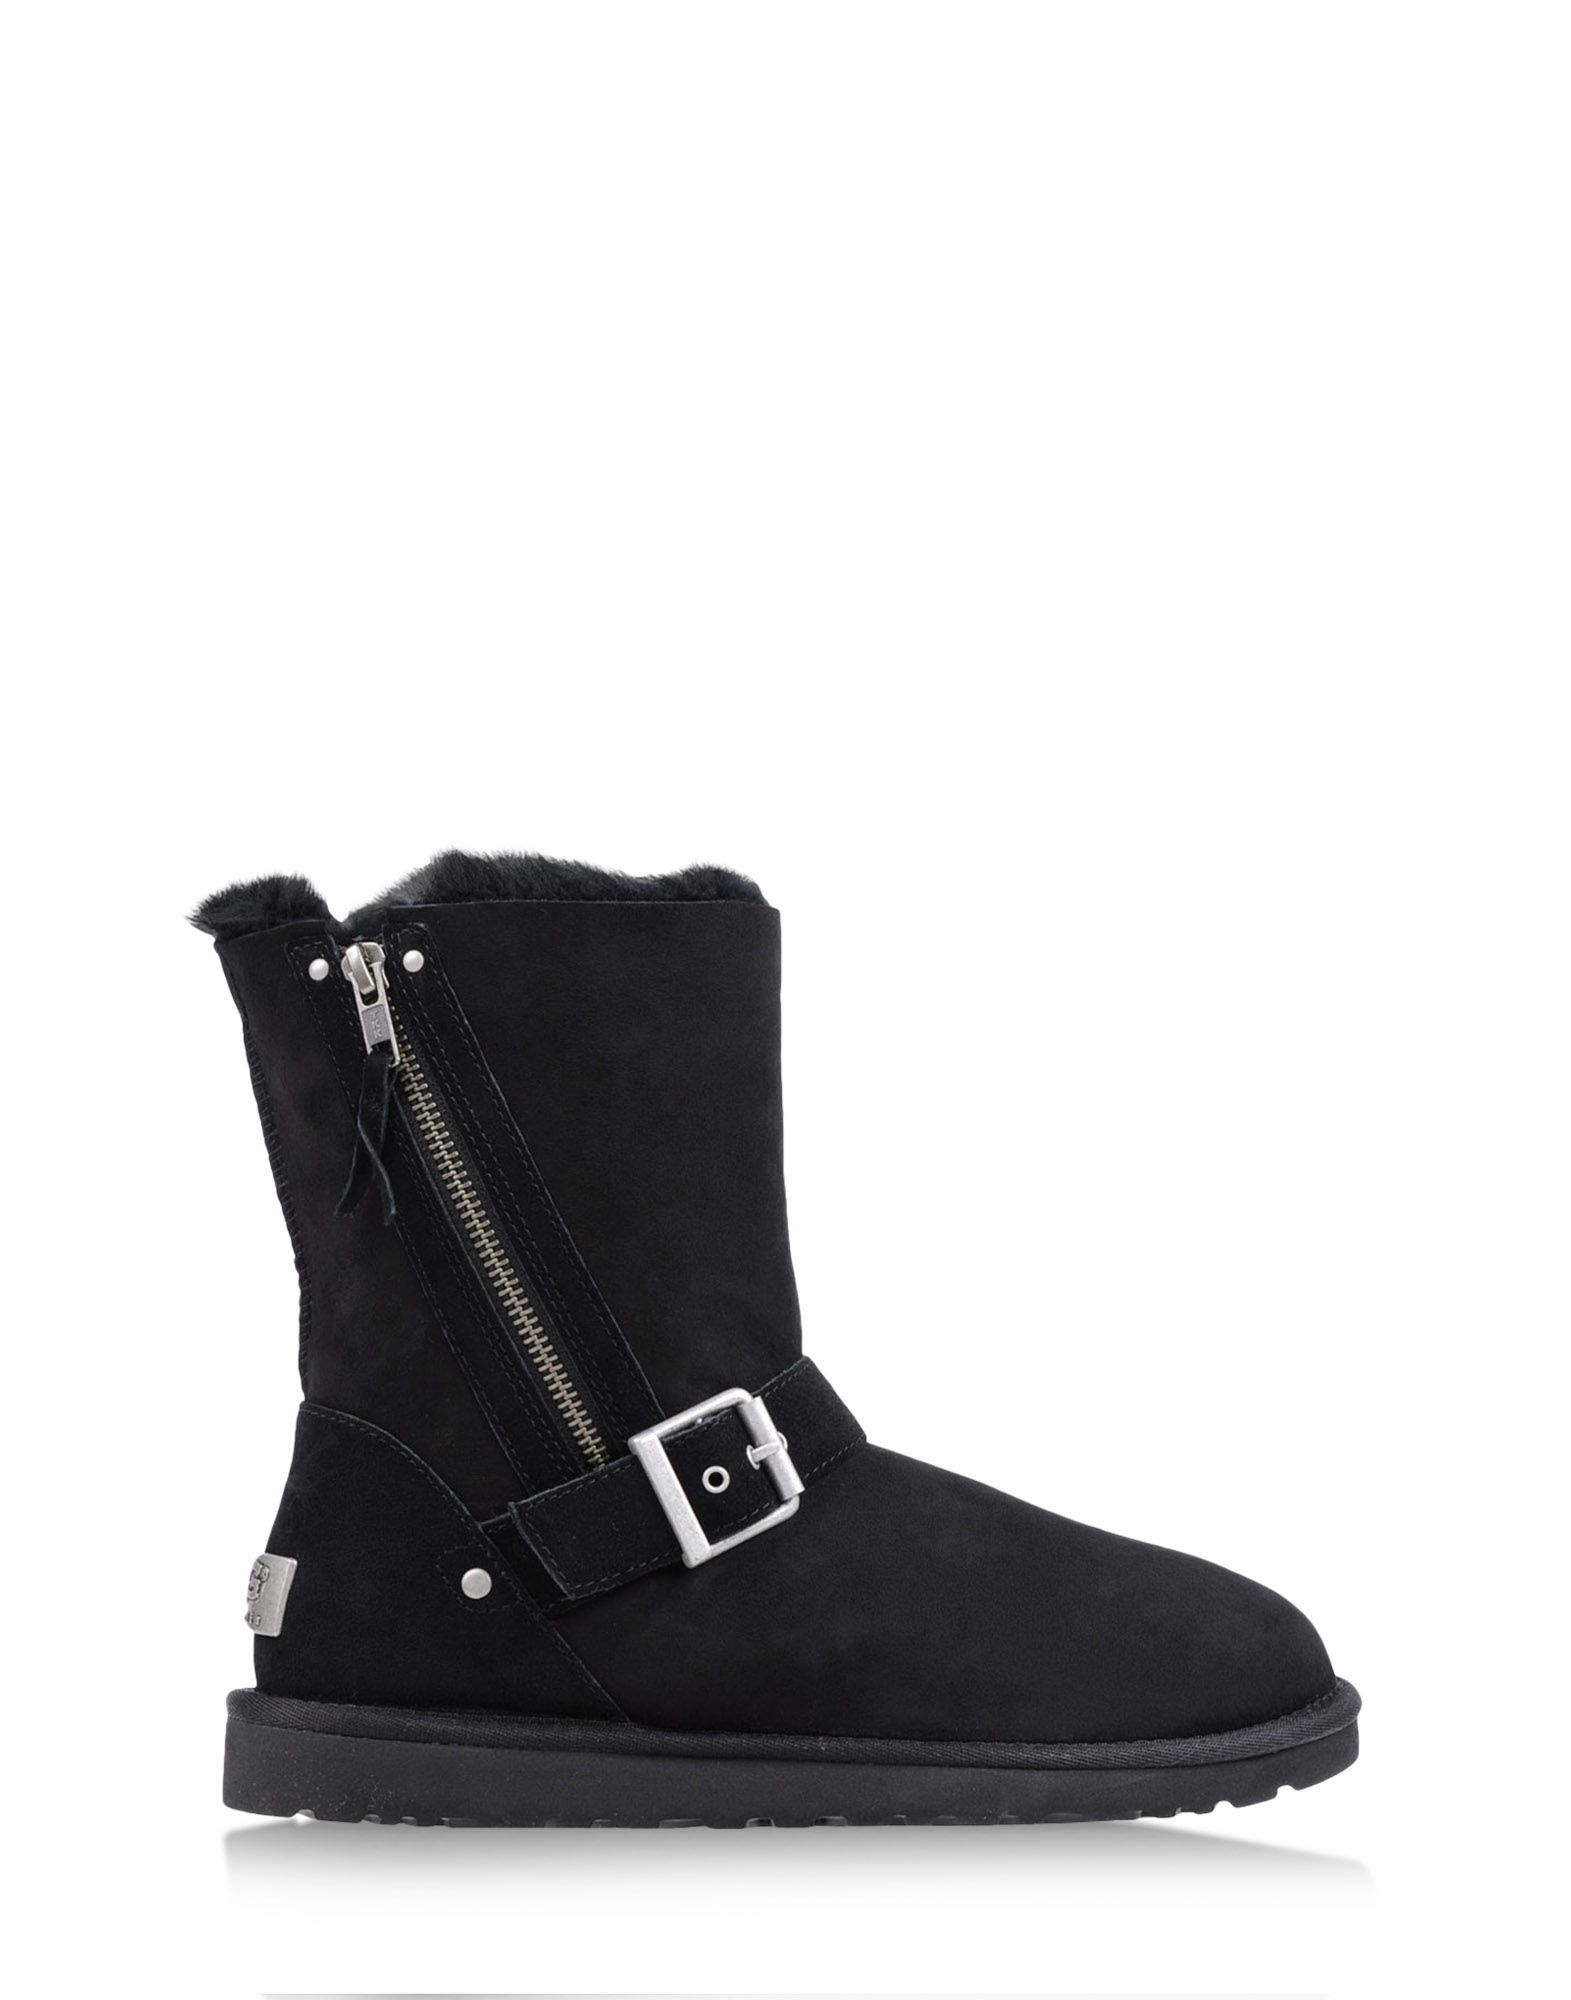 Ugg Rain Cold Weather Boots In Black Lyst